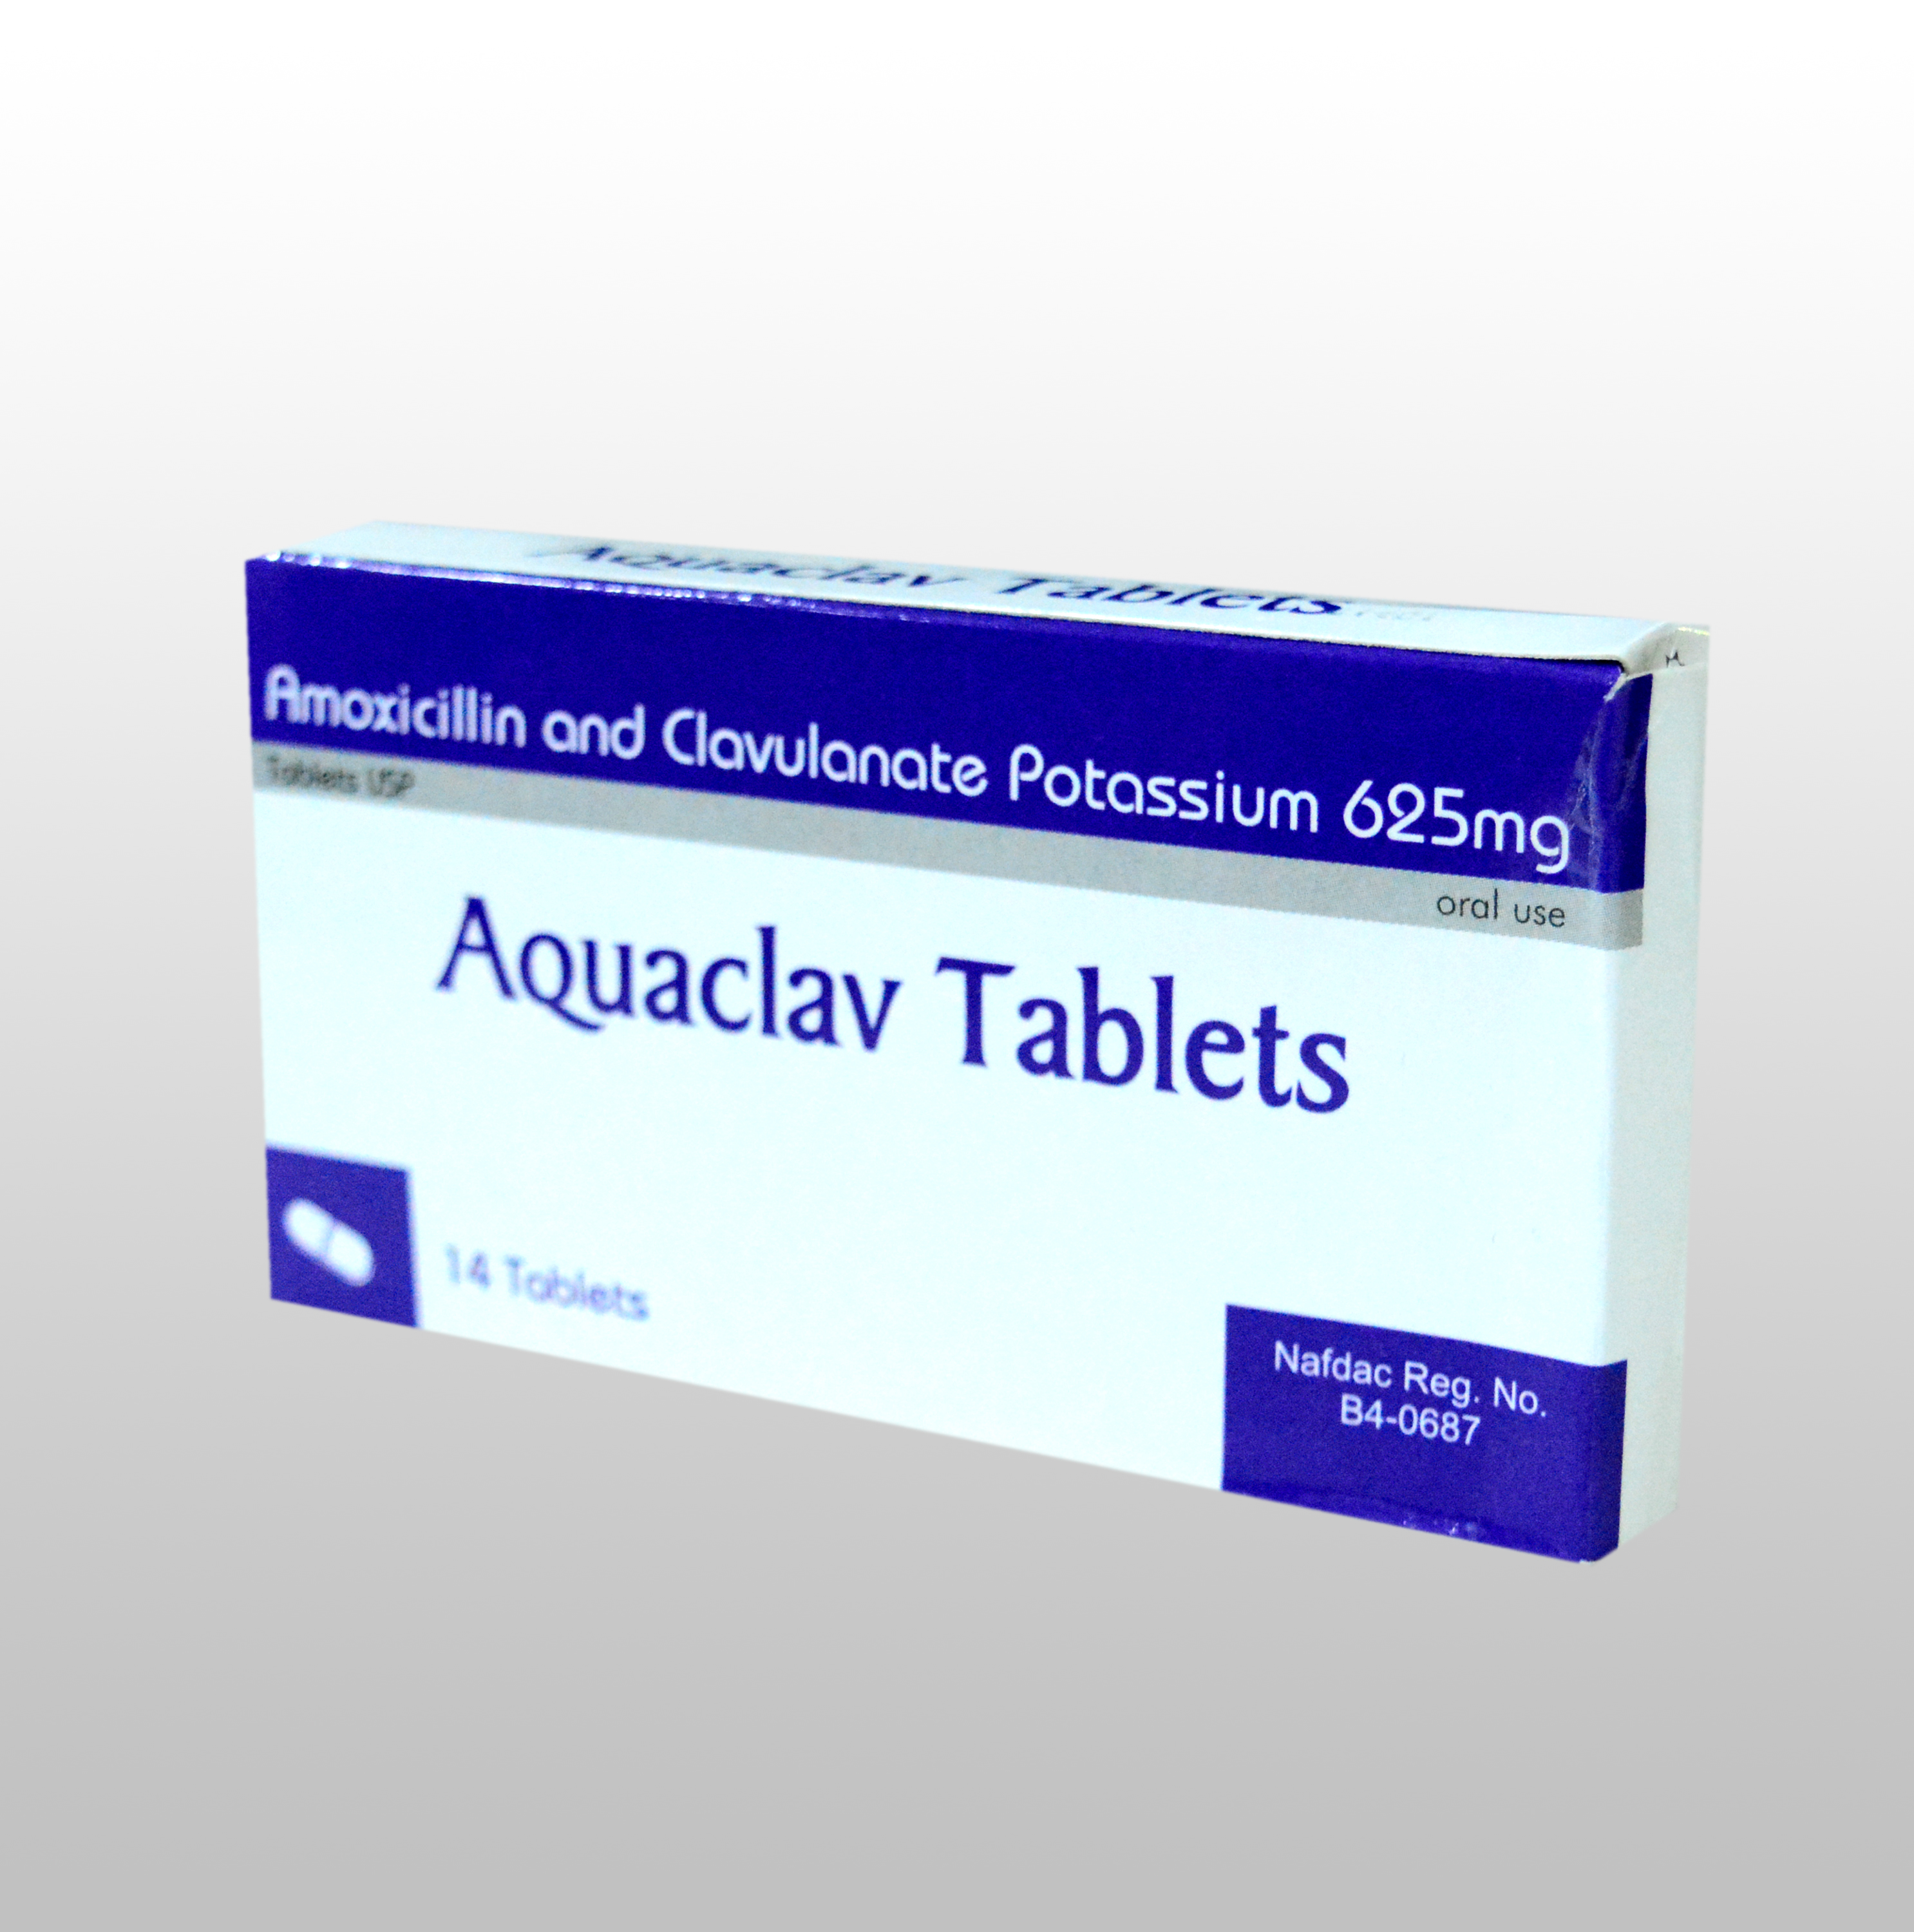 AMOXICILLIN & CLAVULANATE POTASSIUM TABLETS  USP  500 /125 mg